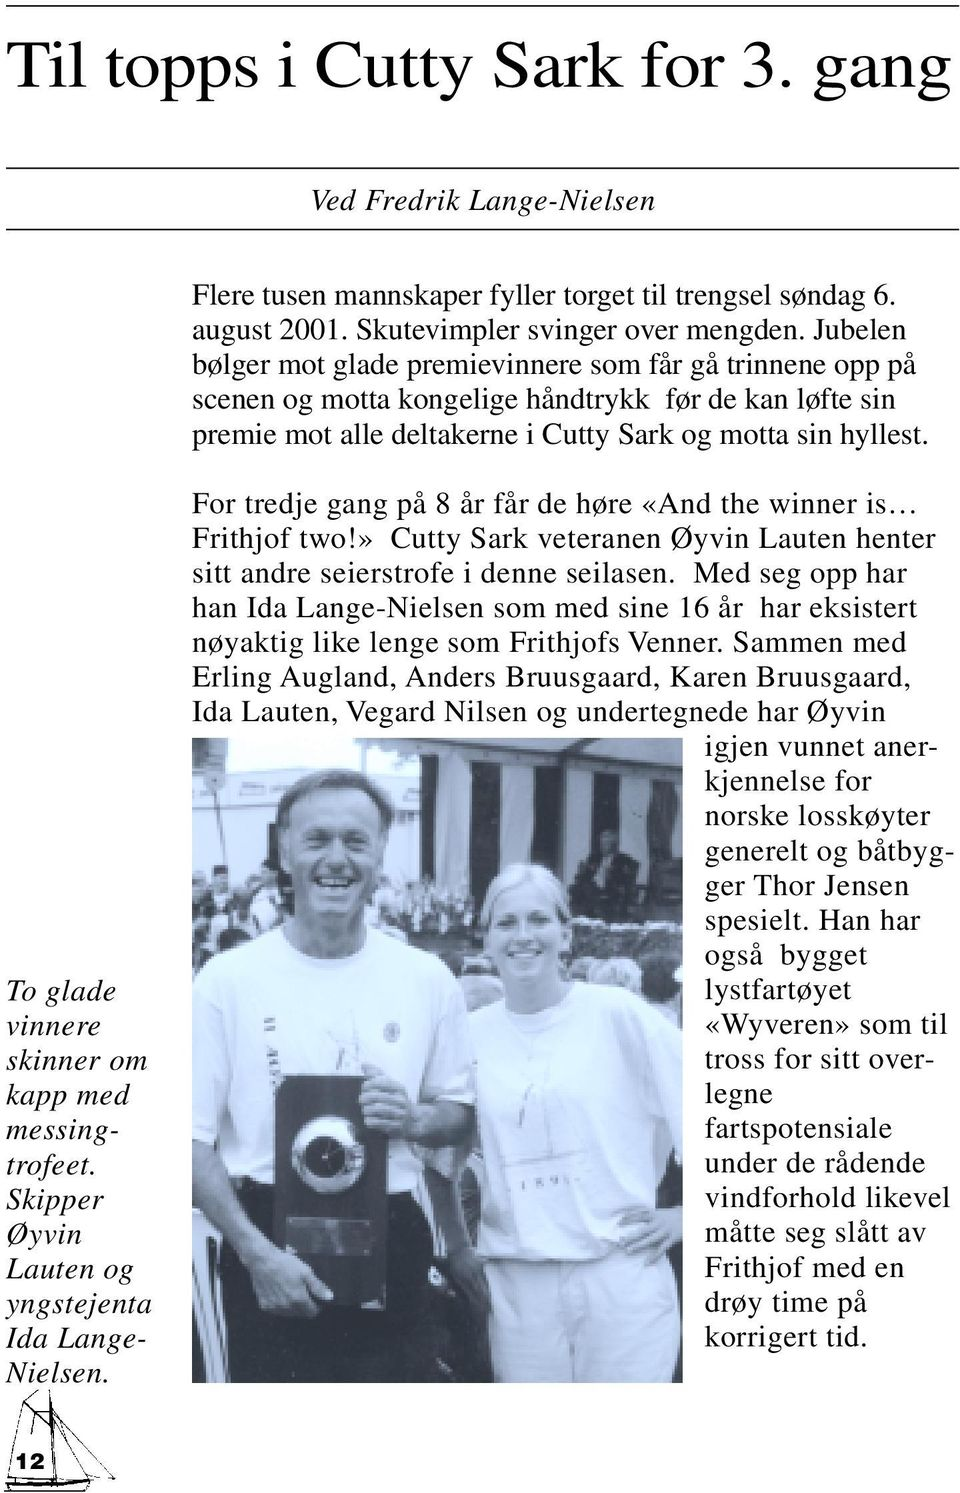 To glade vinnere skinner om kapp med messingtrofeet. Skipper Øyvin Lauten og yngstejenta Ida Lange- Nielsen. For tredje gang på 8 år får de høre «And the winner is Frithjof two!